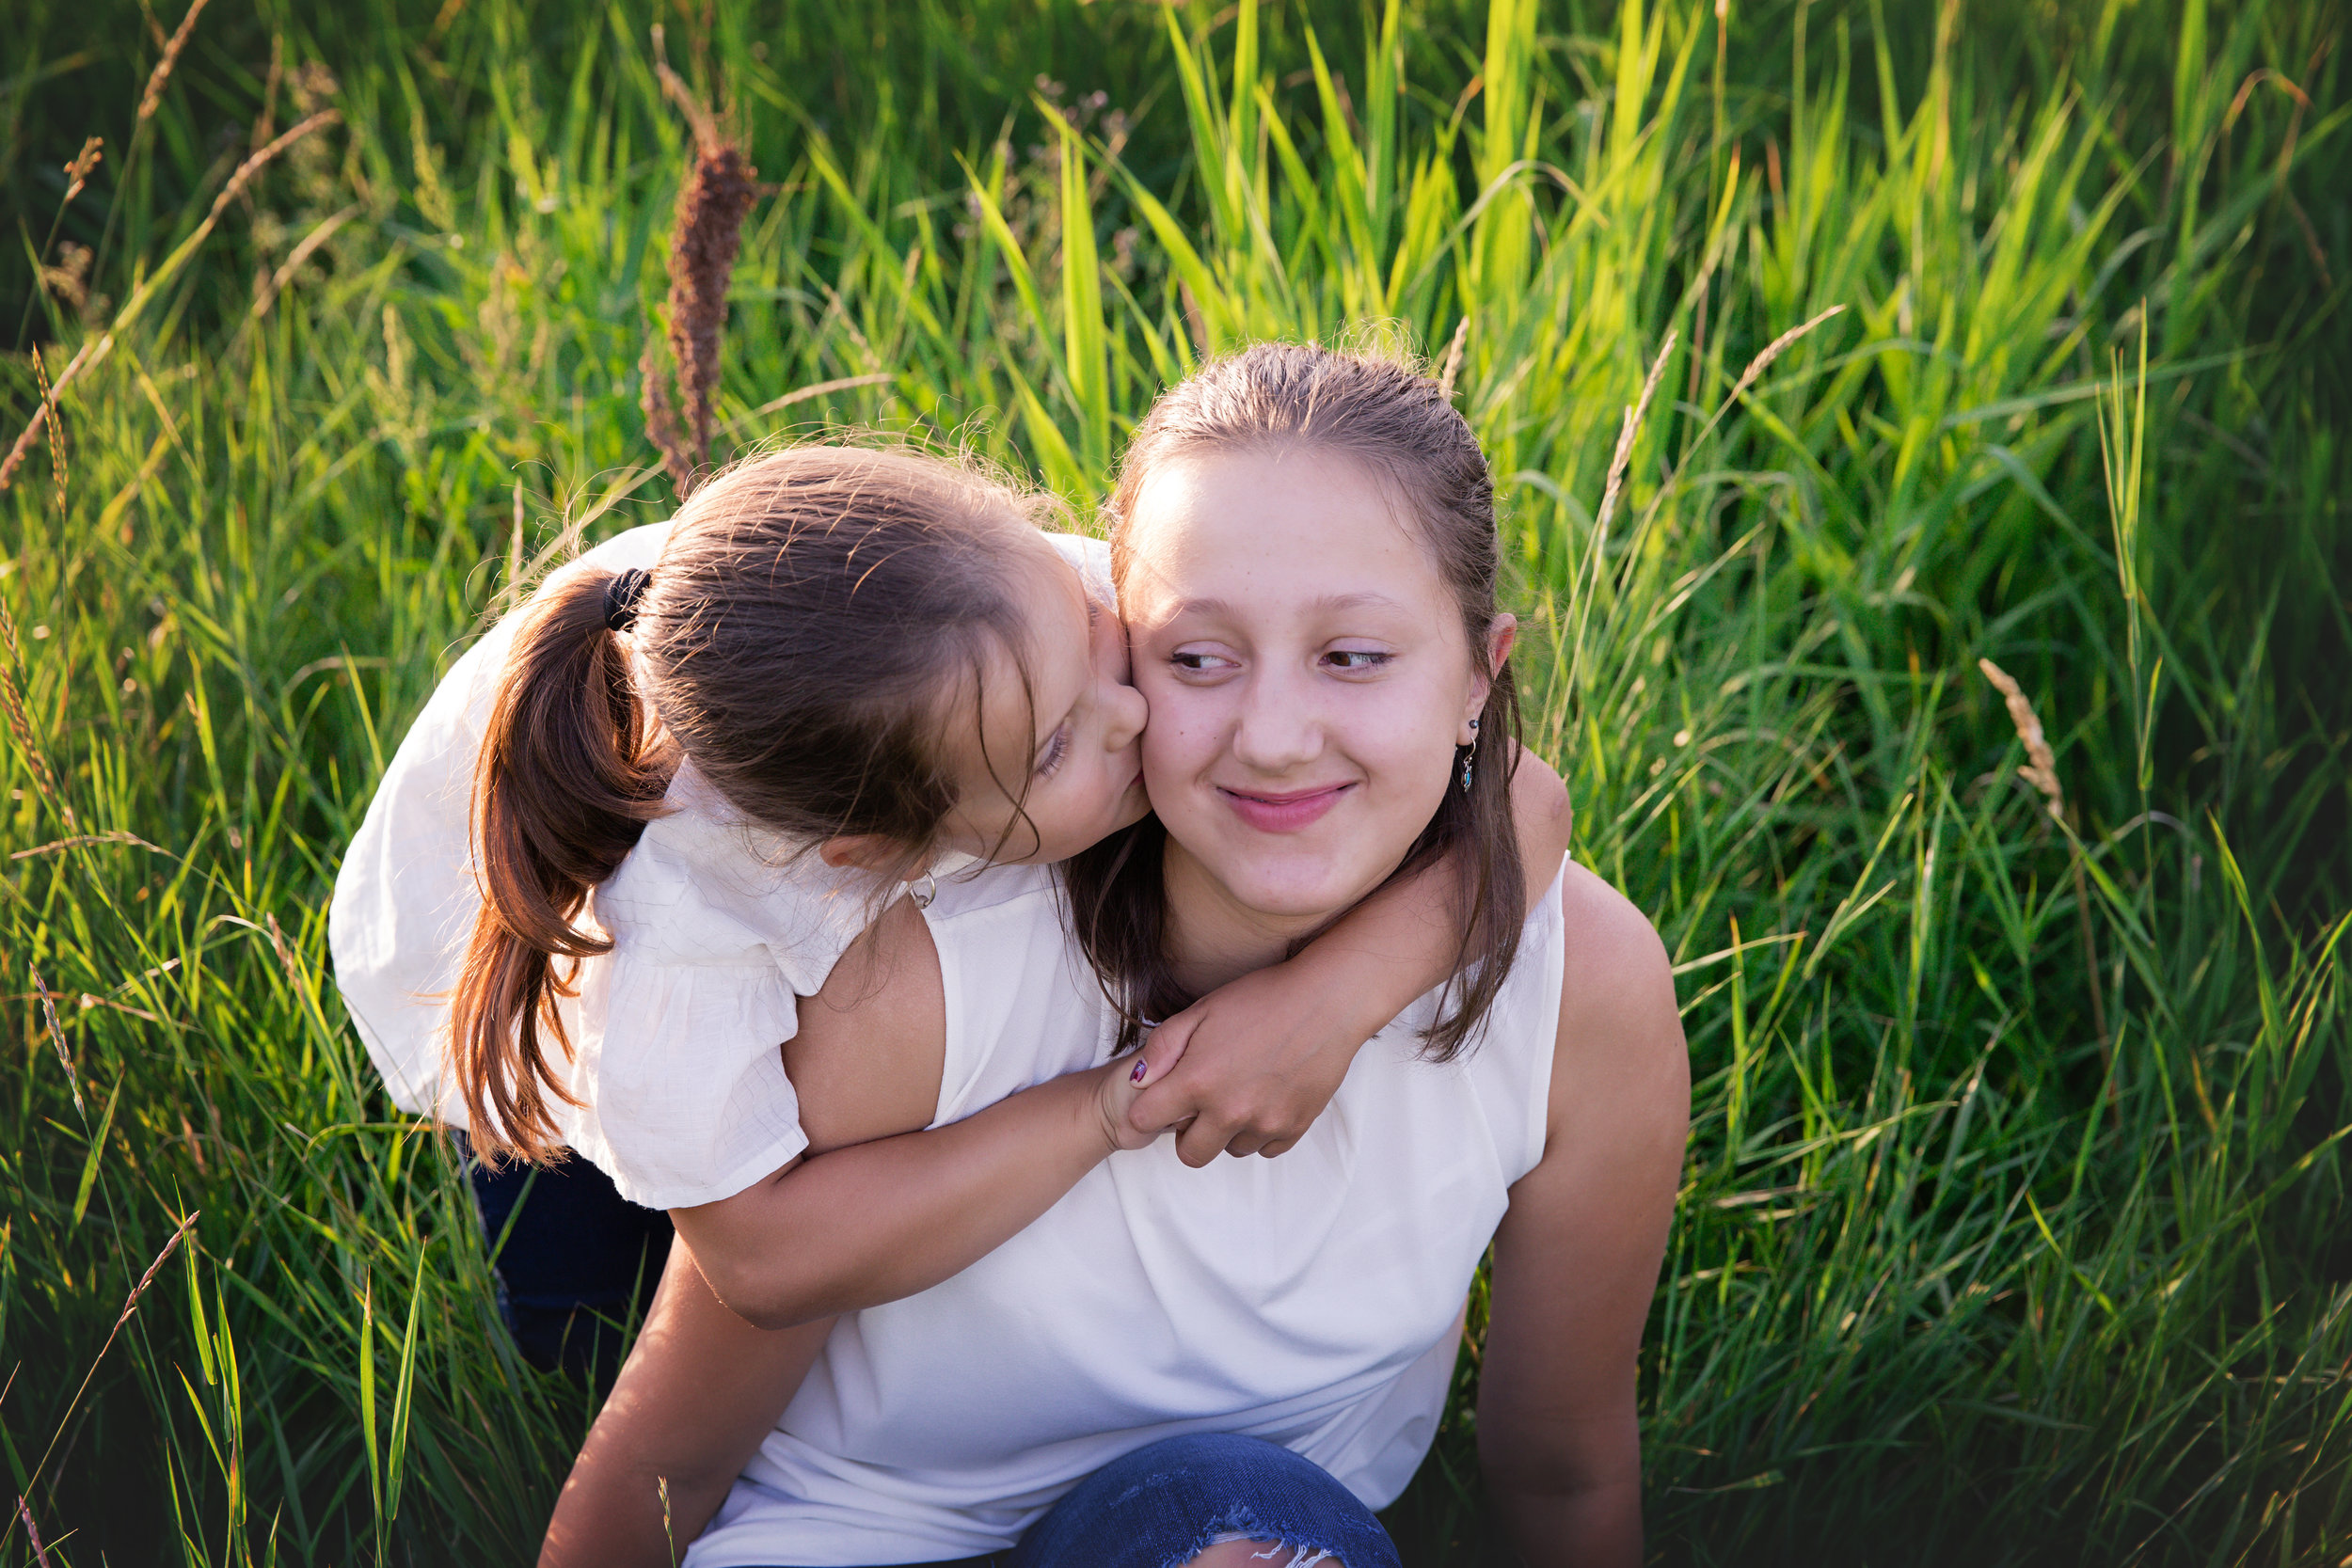 Little sister is giving a kiss to her older sister. Airdrie family photographer. Milashka Photography